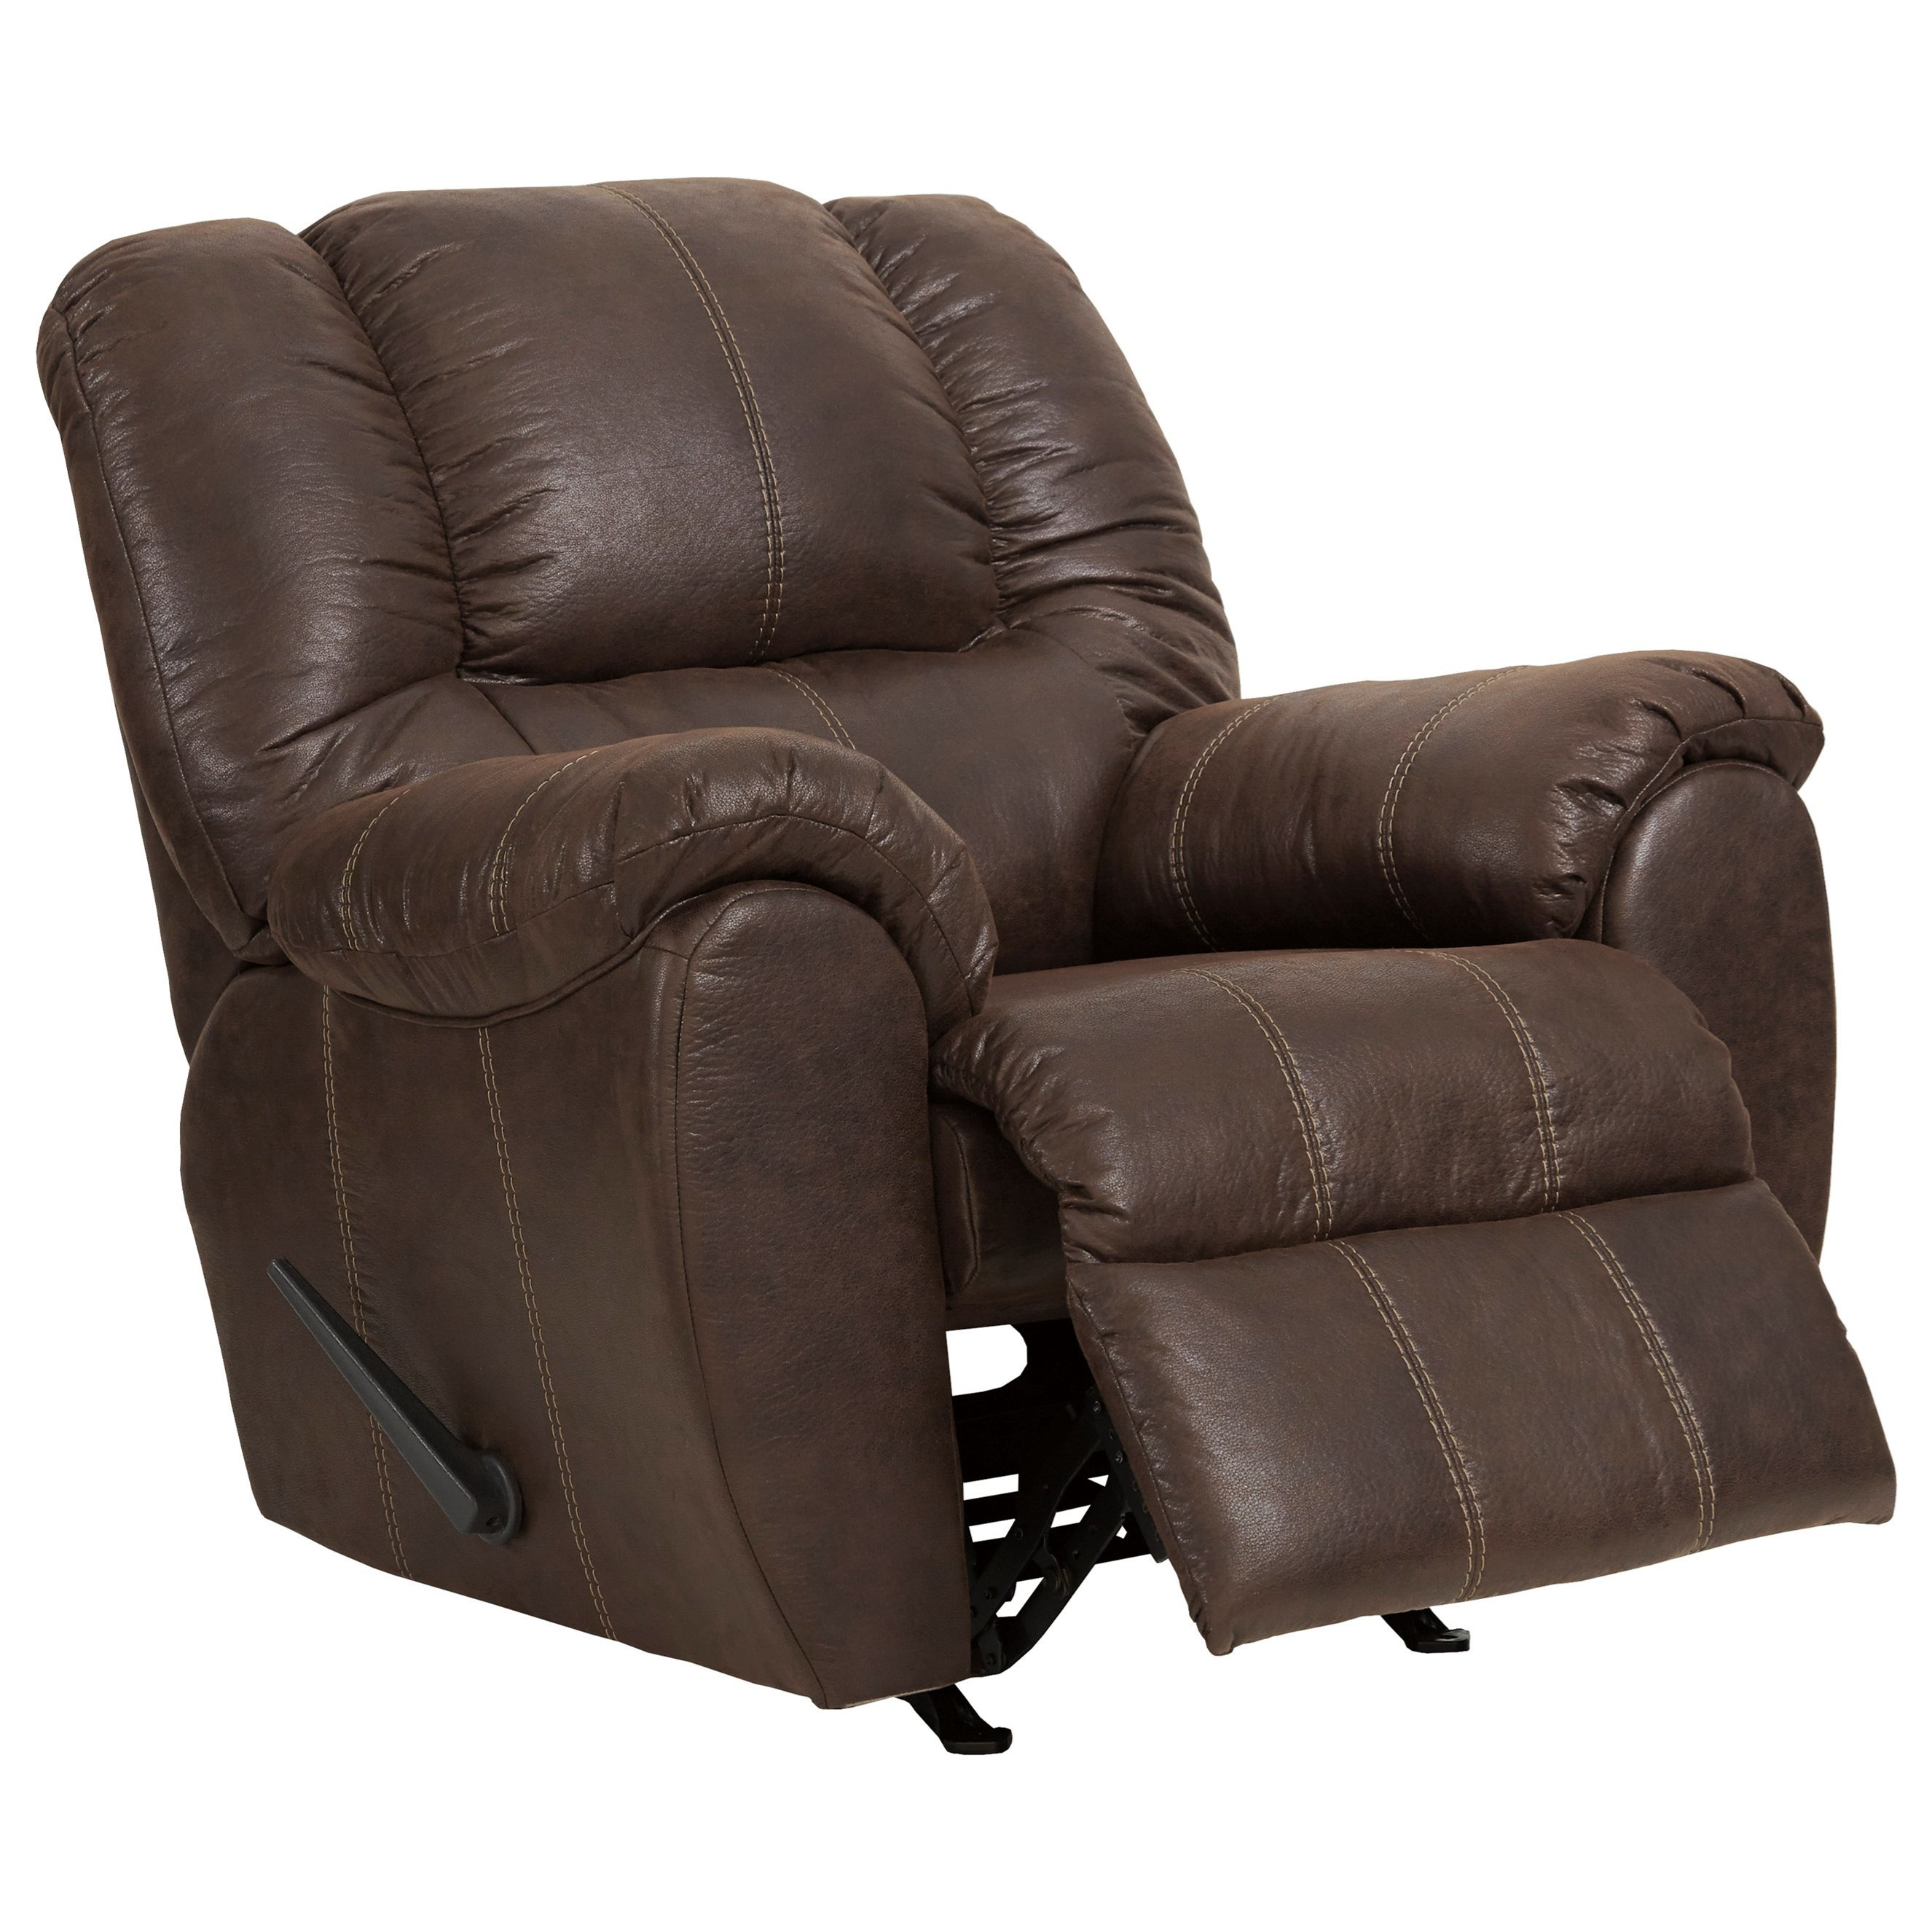 McGann Rocker Recliner by Signature Design by Ashley at Beck's Furniture